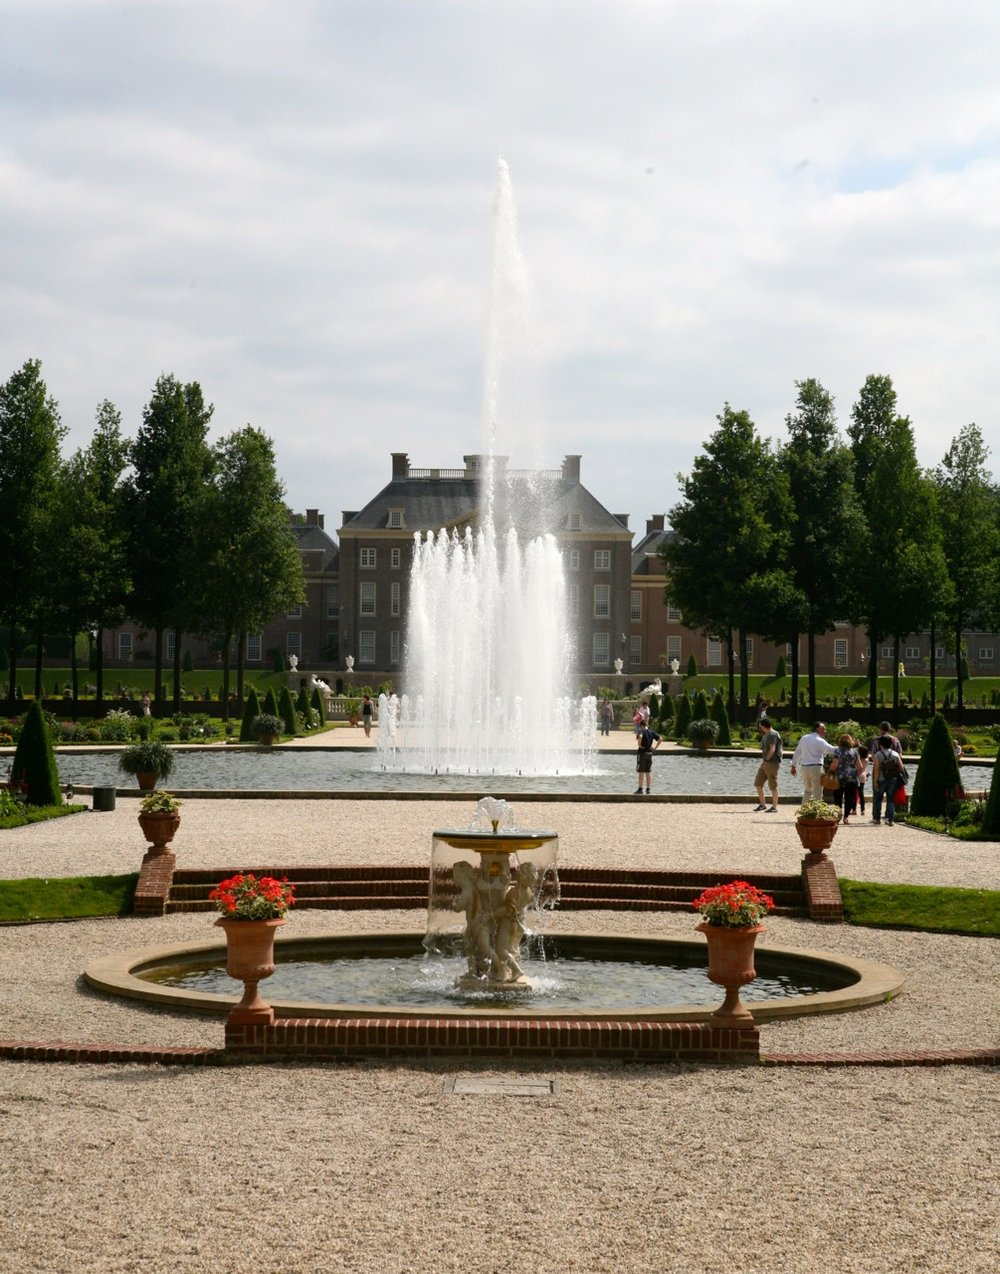 """The Koningssprong [King's Leap fountain] was, with its 13 meters, the highest spouting fountain in Europe."" (source: Het Loo website)"